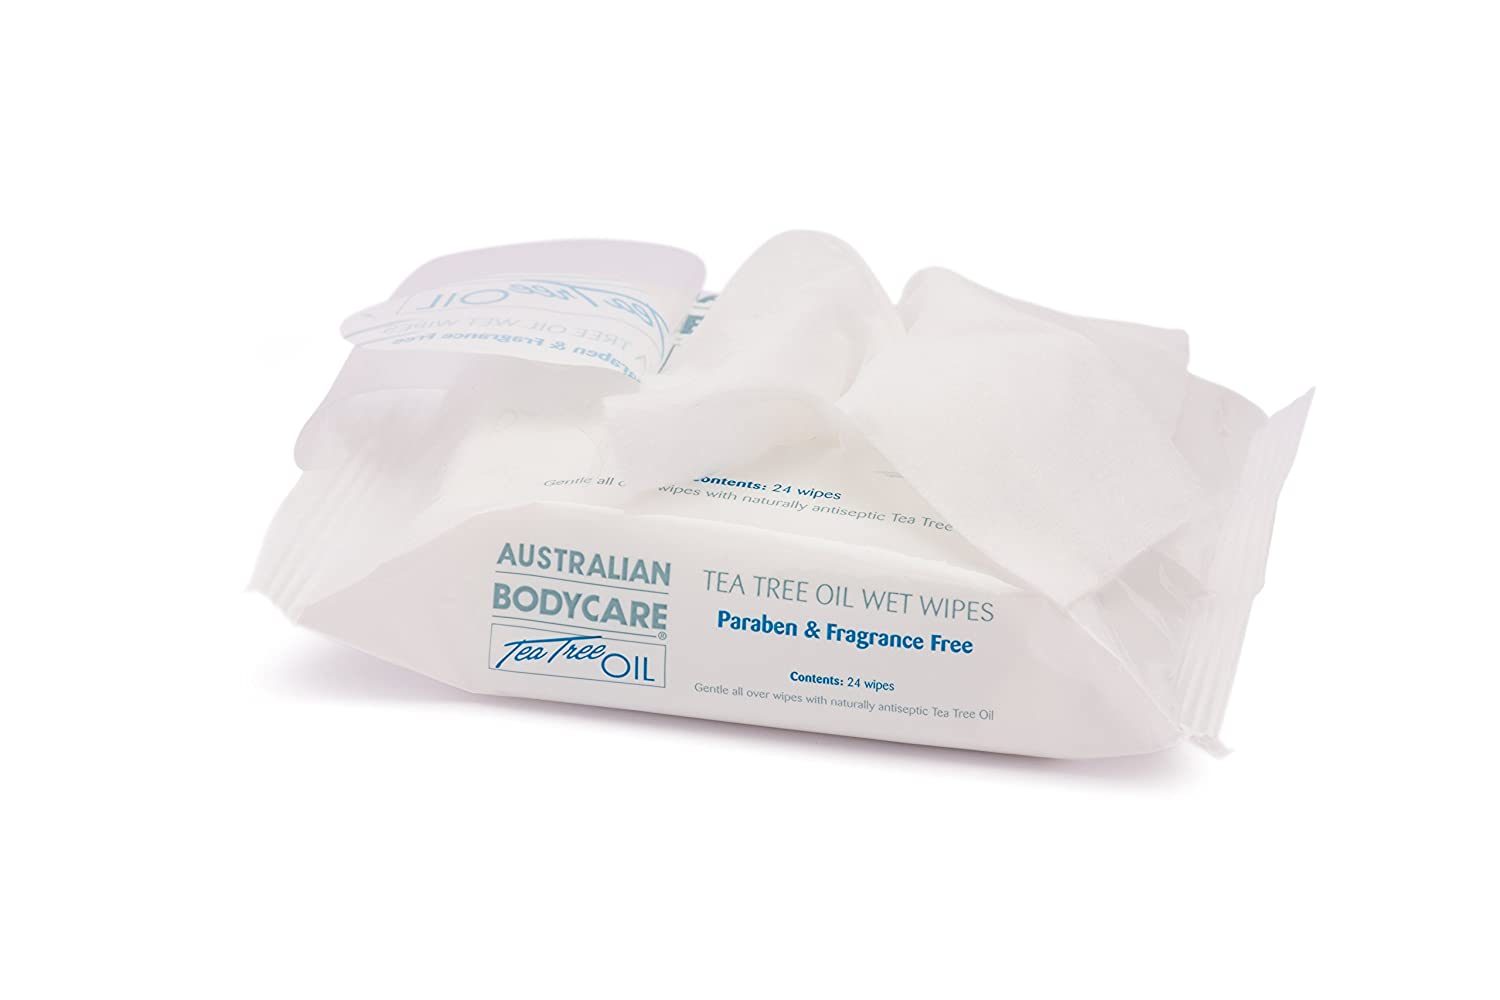 Australian Bodycare Tea Tree Oil Handy Pack Wet Wipes Australian Bodycare UK Ltd AB6032-72